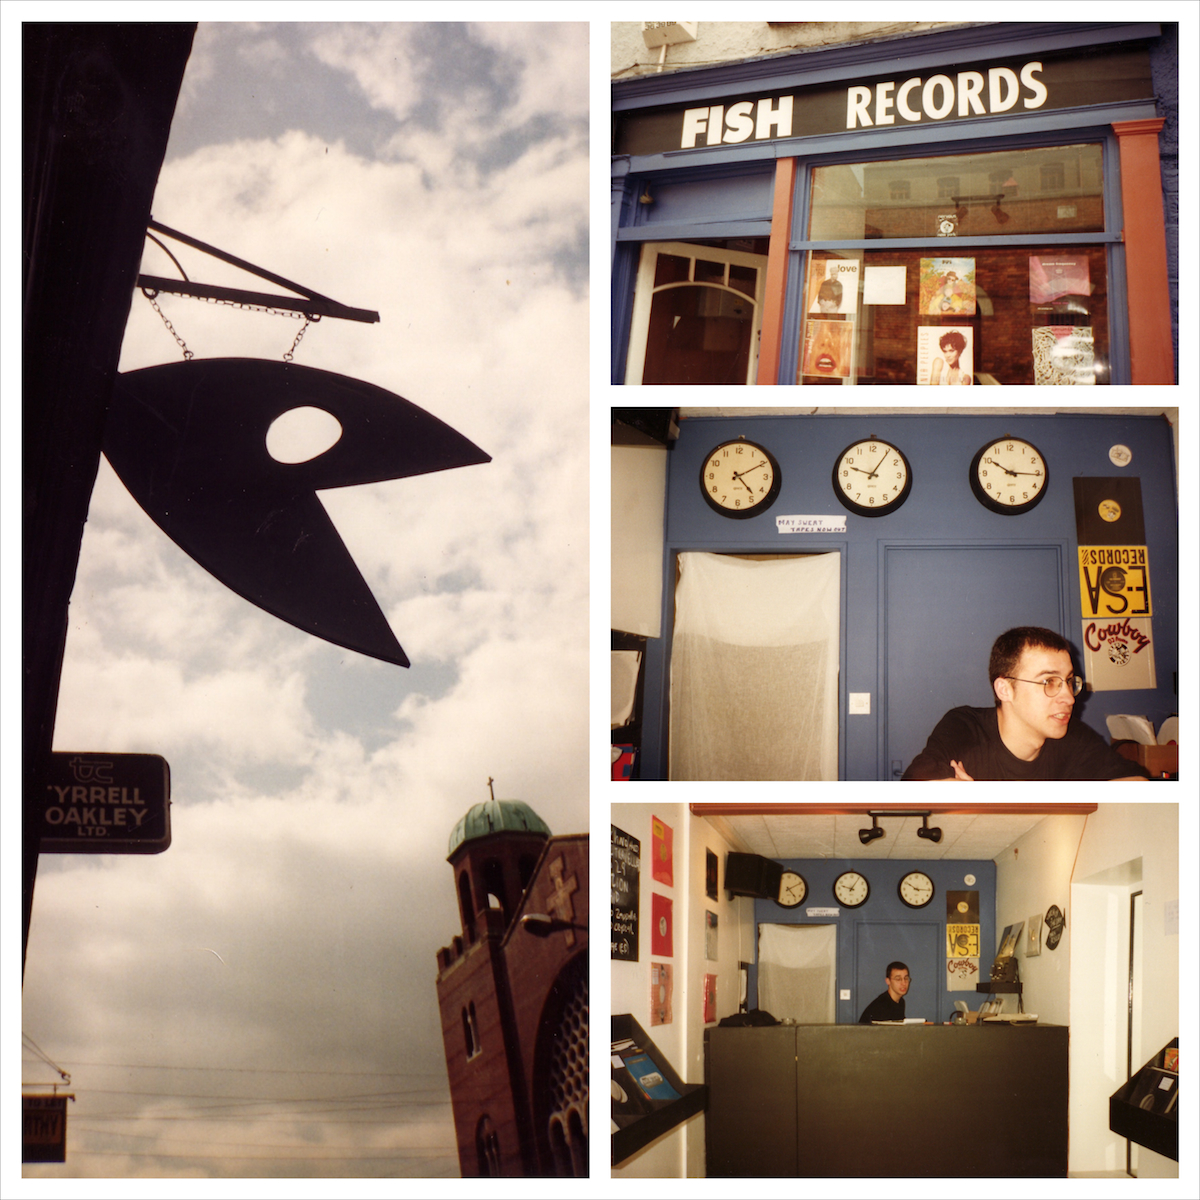 Fish Records, Liberty Street, Cork, 1995